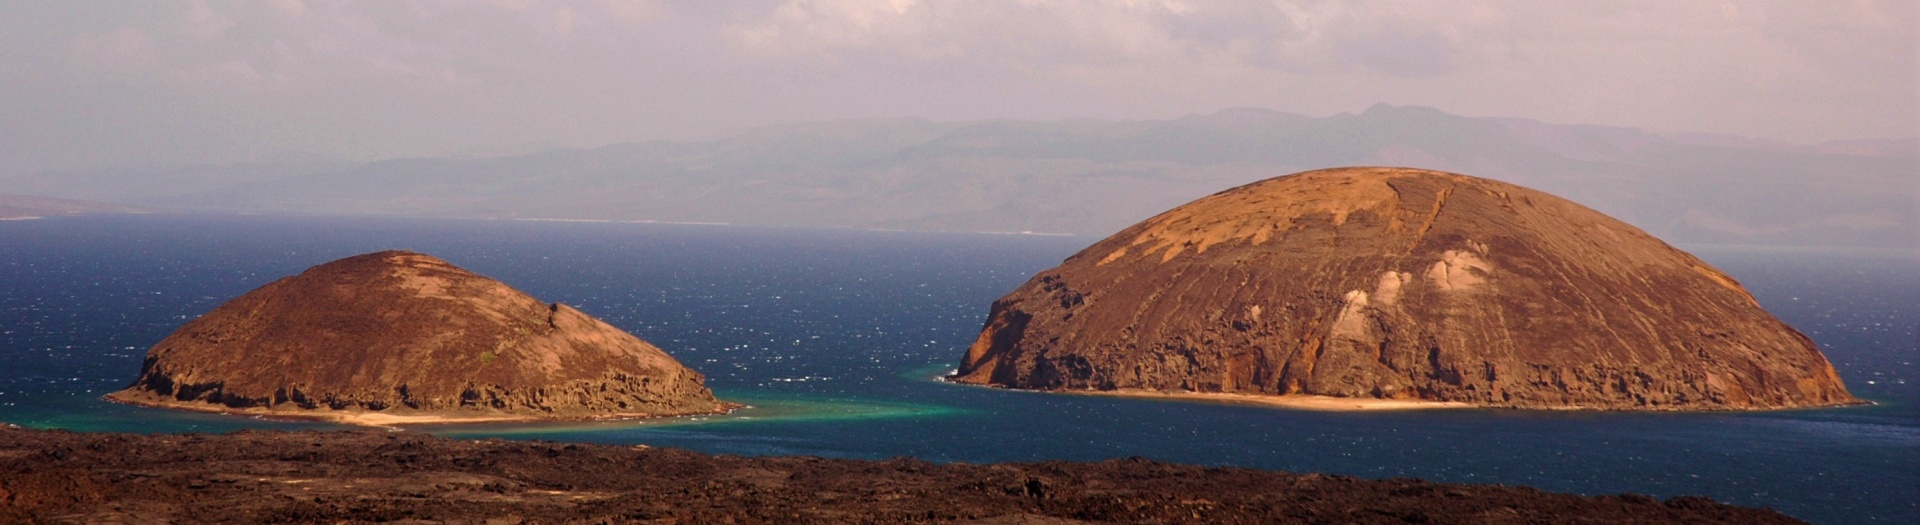 Djibouti's wonder a djibouti diving adventure with DUNE Red Sea